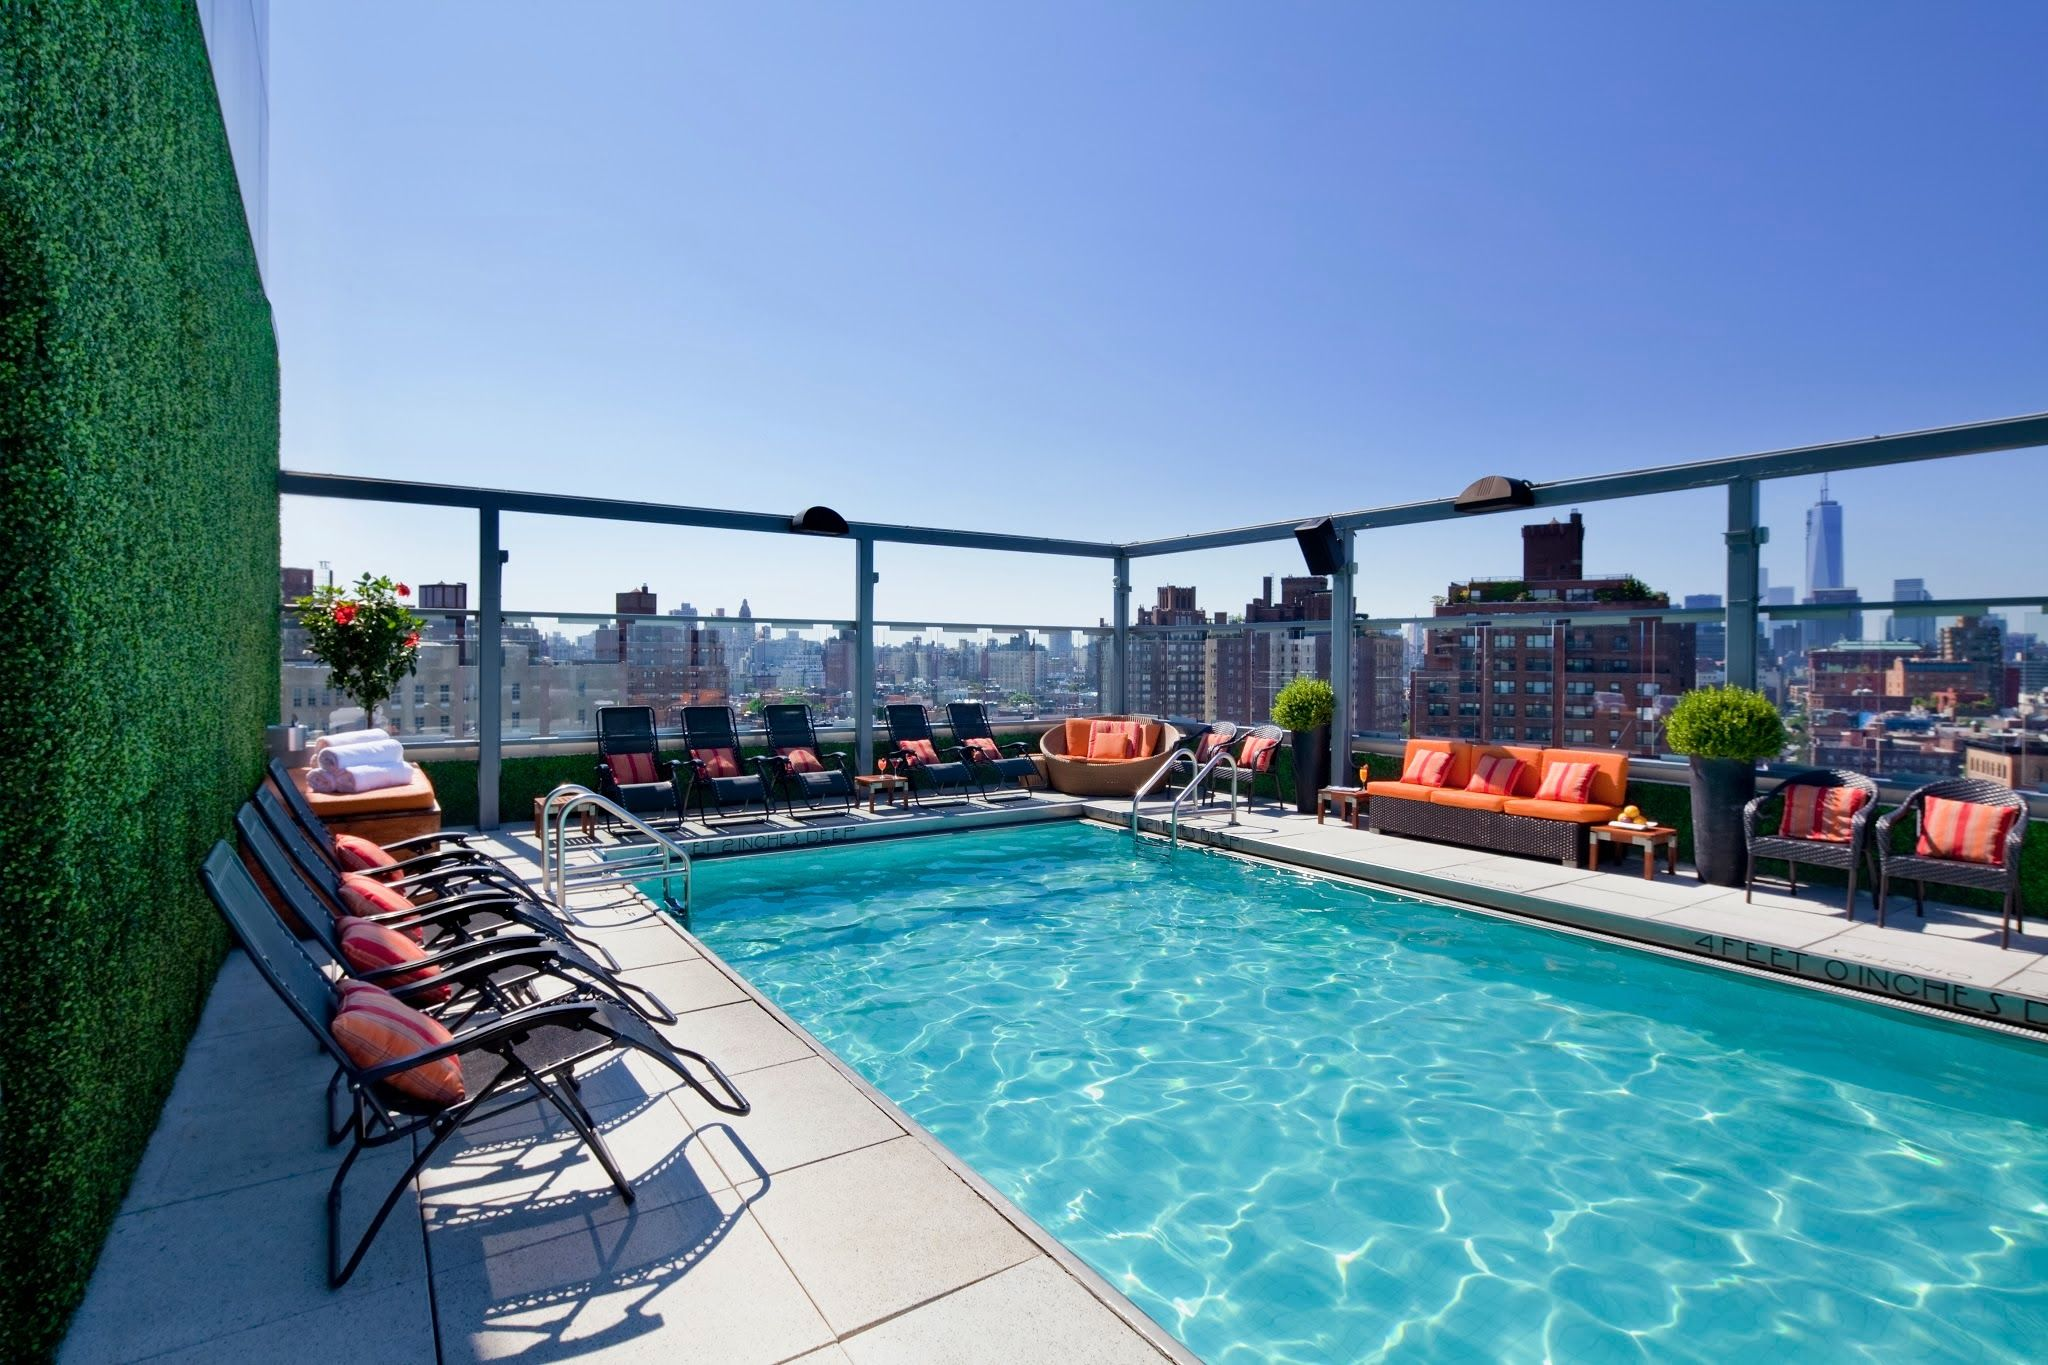 daytime shot of the luxurious rooftop pool